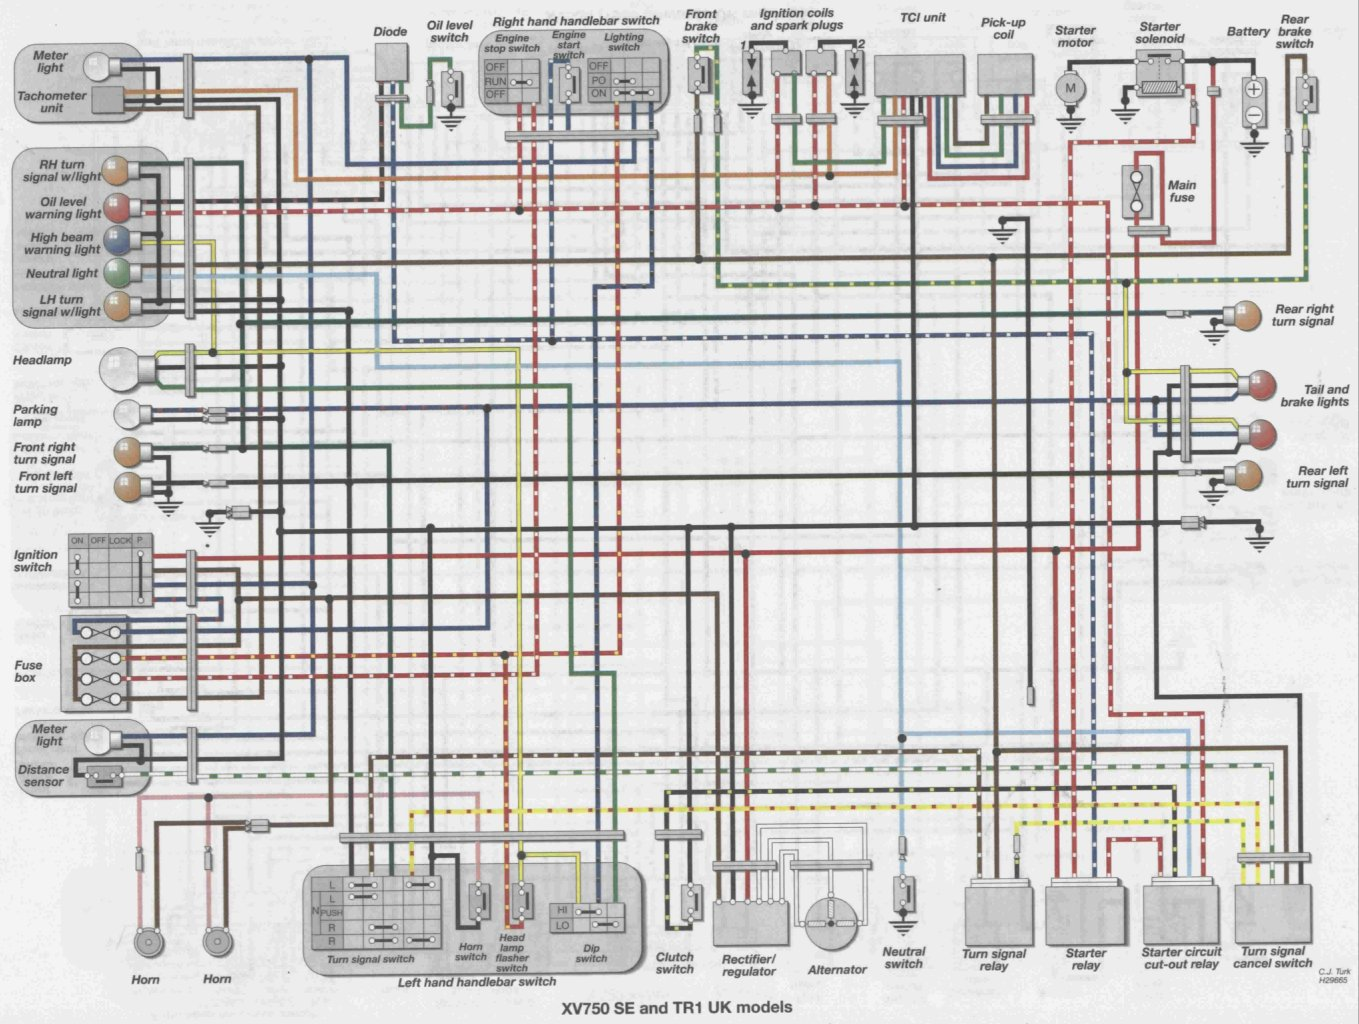 us_uk_XV750SE_TR1 Xv Wiring Diagram on motor diagrams, electronic circuit diagrams, hvac diagrams, transformer diagrams, pinout diagrams, smart car diagrams, engine diagrams, honda motorcycle repair diagrams, sincgars radio configurations diagrams, gmc fuse box diagrams, lighting diagrams, series and parallel circuits diagrams, battery diagrams, electrical diagrams, led circuit diagrams, switch diagrams, friendship bracelet diagrams, internet of things diagrams, troubleshooting diagrams,